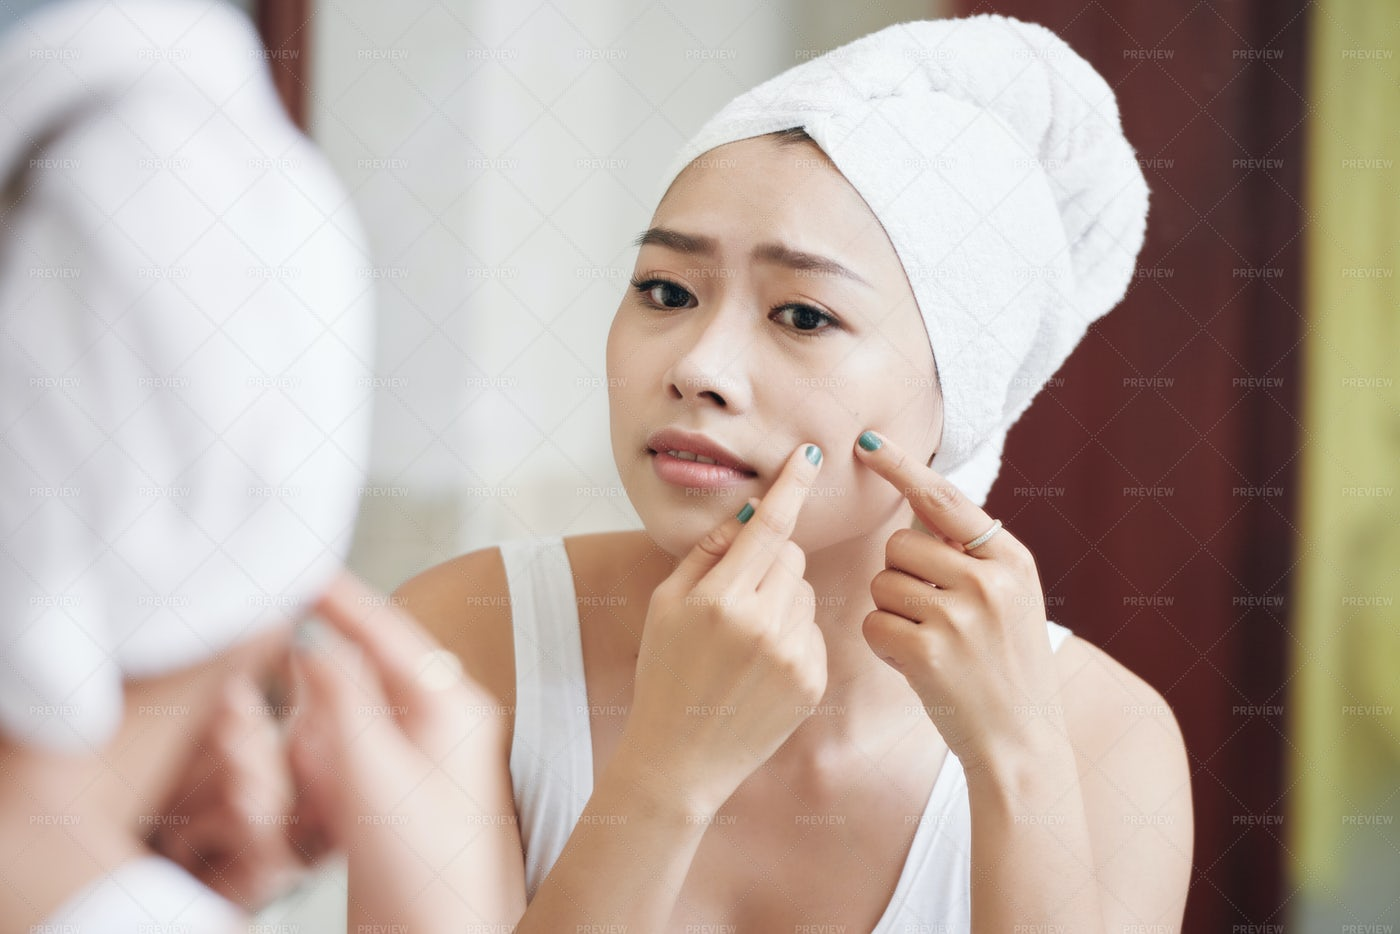 Asian Woman Popping Pimples In...: Stock Photos